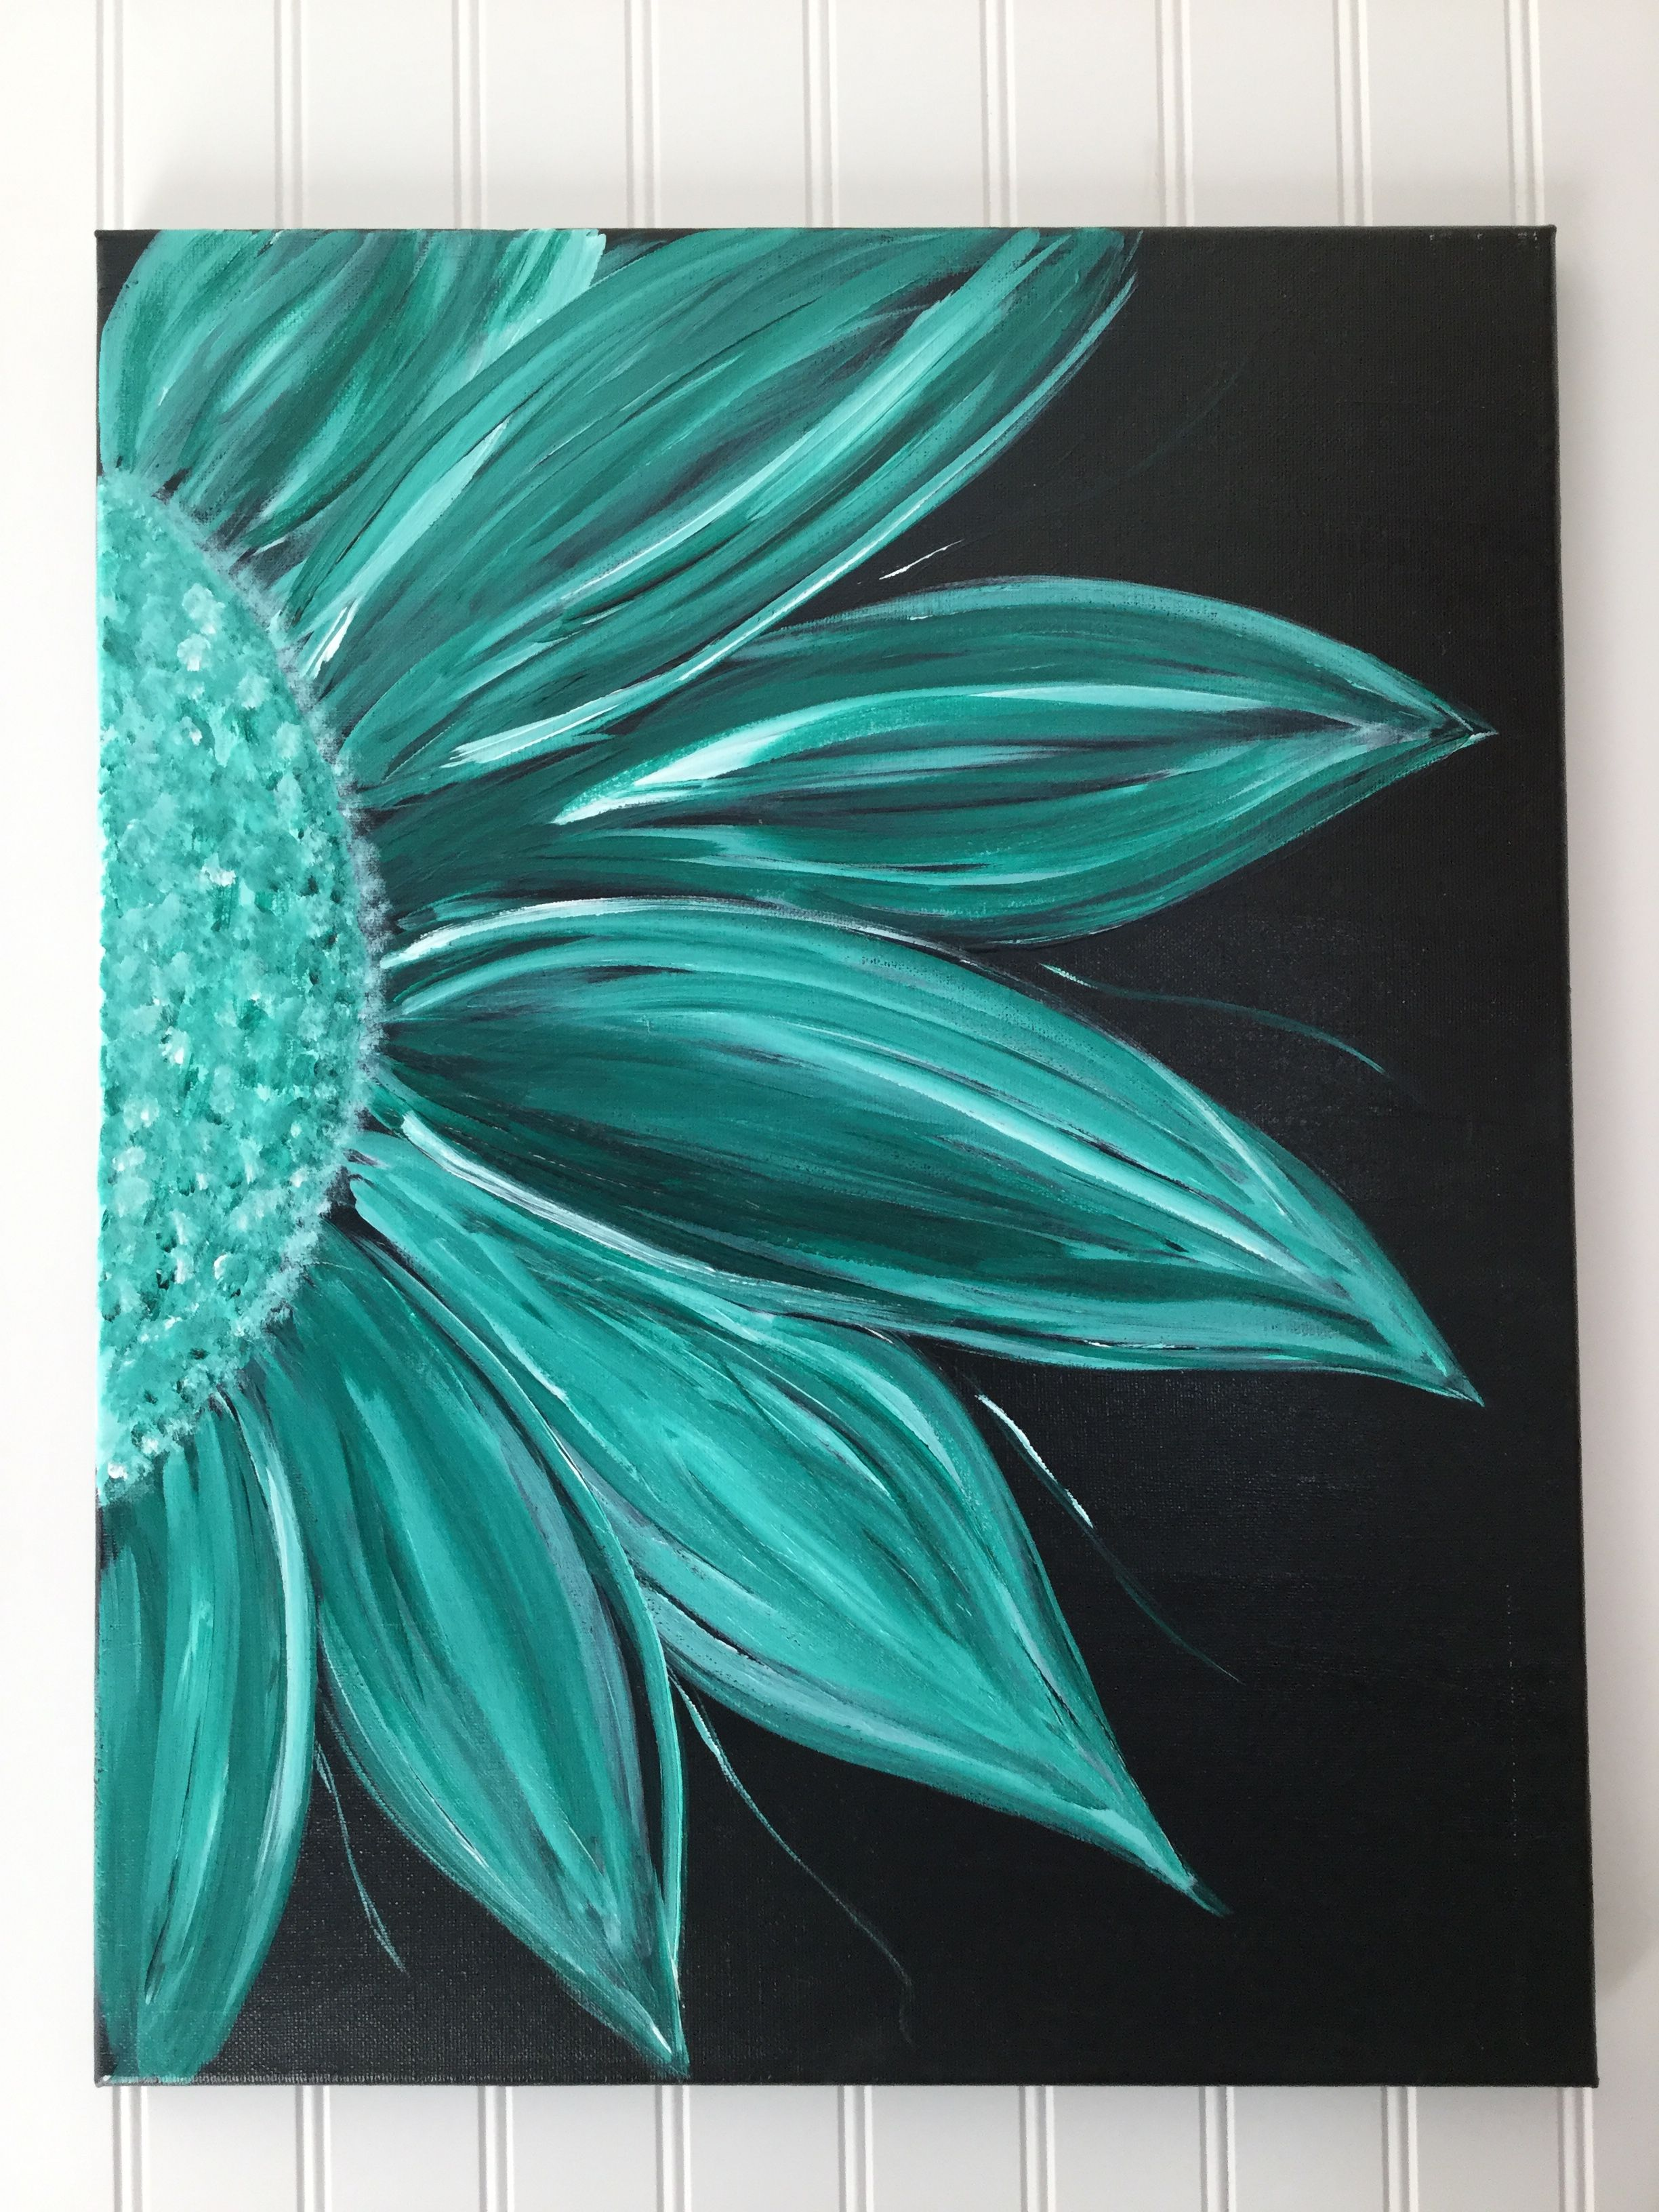 Acrylic Flower Painting On Black Background Black Canvas Paintings Simple Acrylic Paintings Black Background Painting